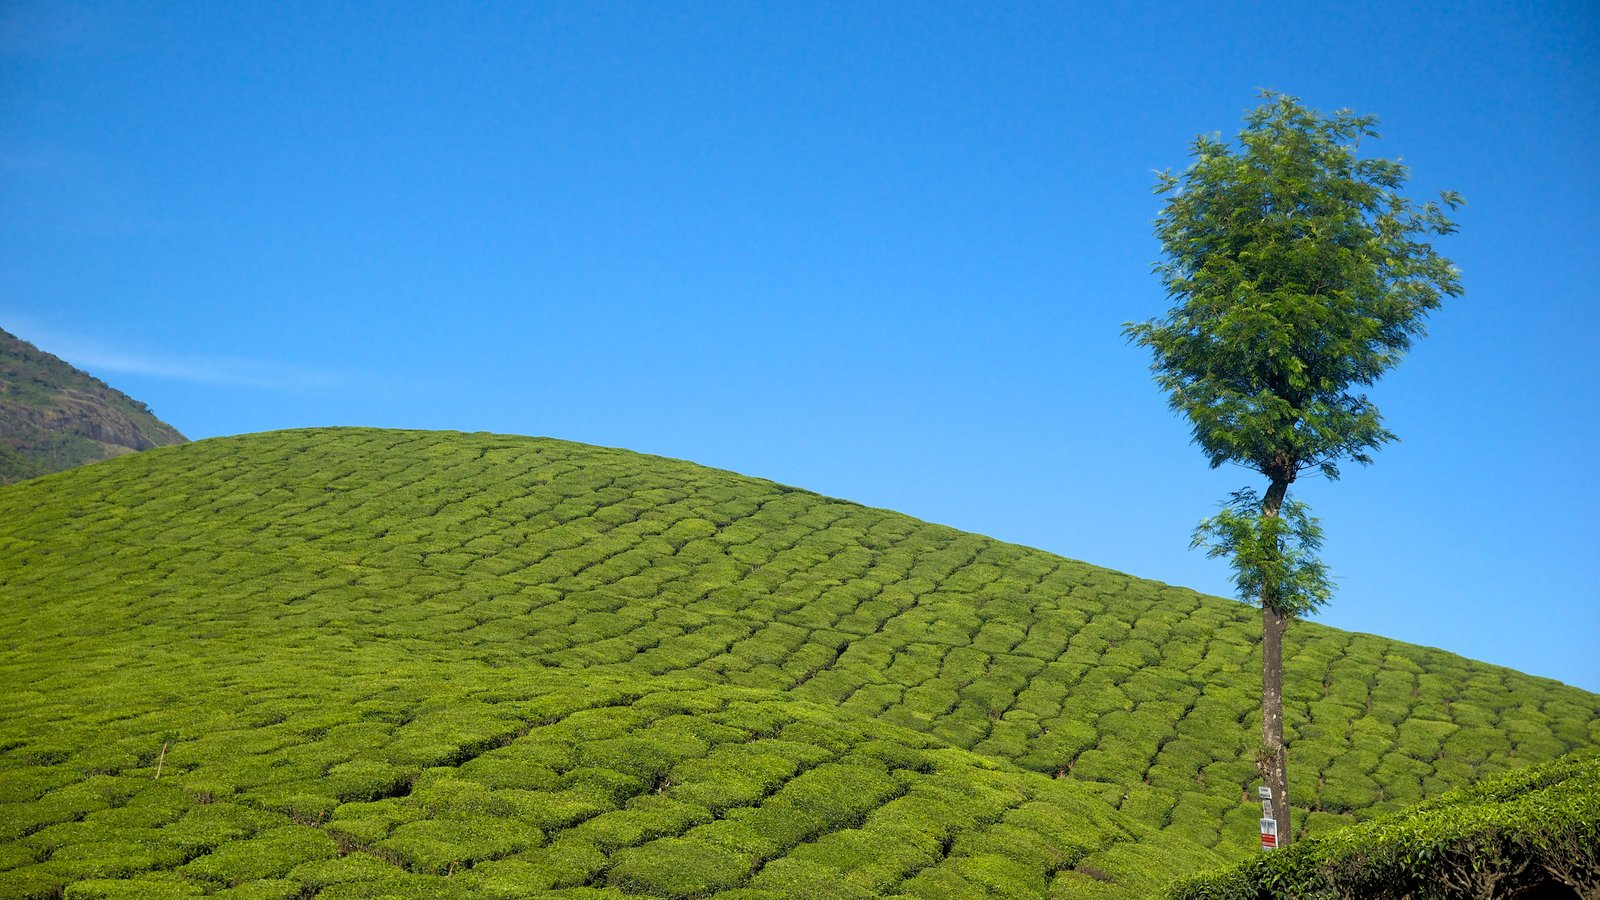 Munnar which includes tranquil scenes